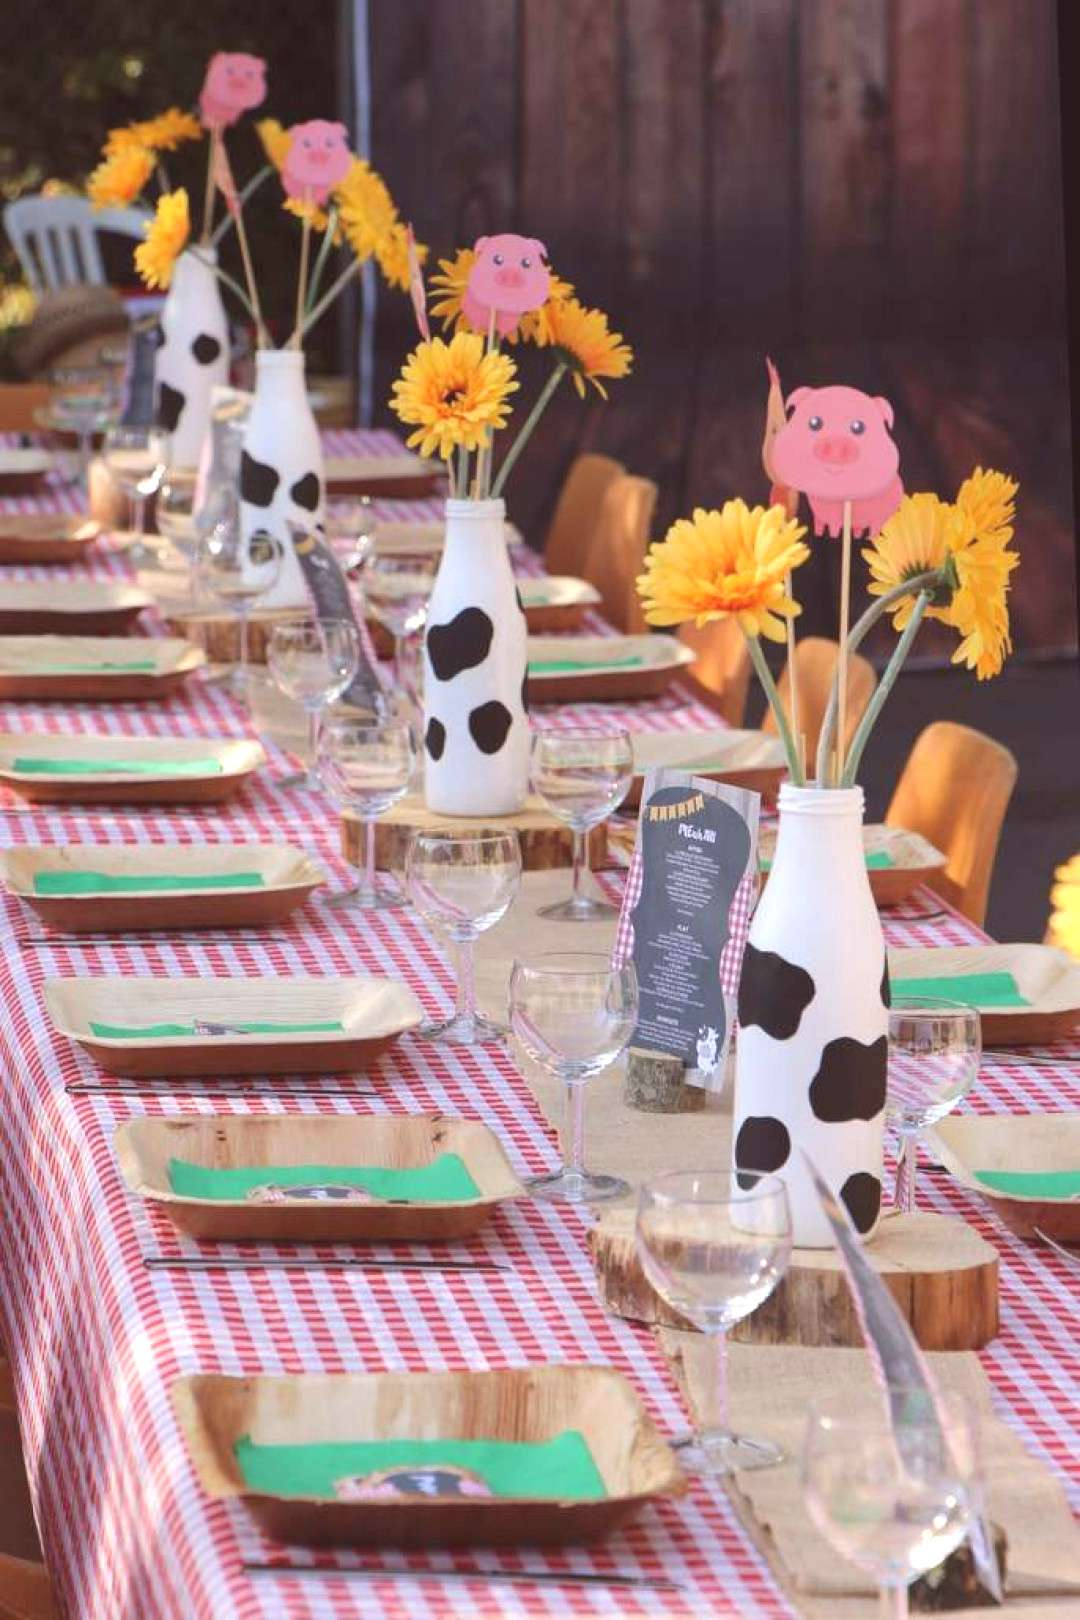 Take a look at this lovely farm themed birthday party! The table settings are gorgeous! See more p